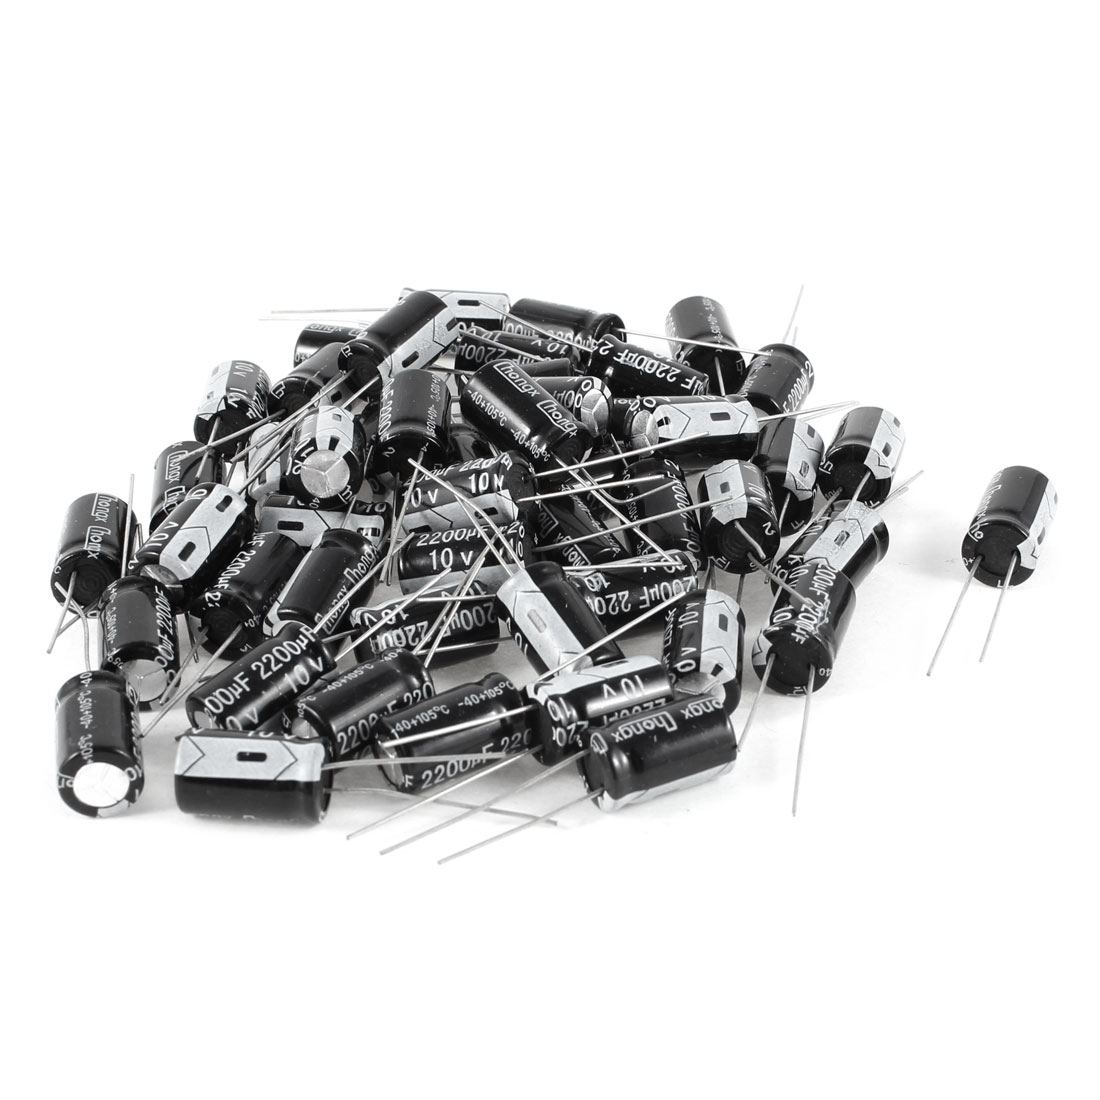 50 Pcs 2200uF 10V 105C Radial Electrolytic Capacitors Black 10x17mm